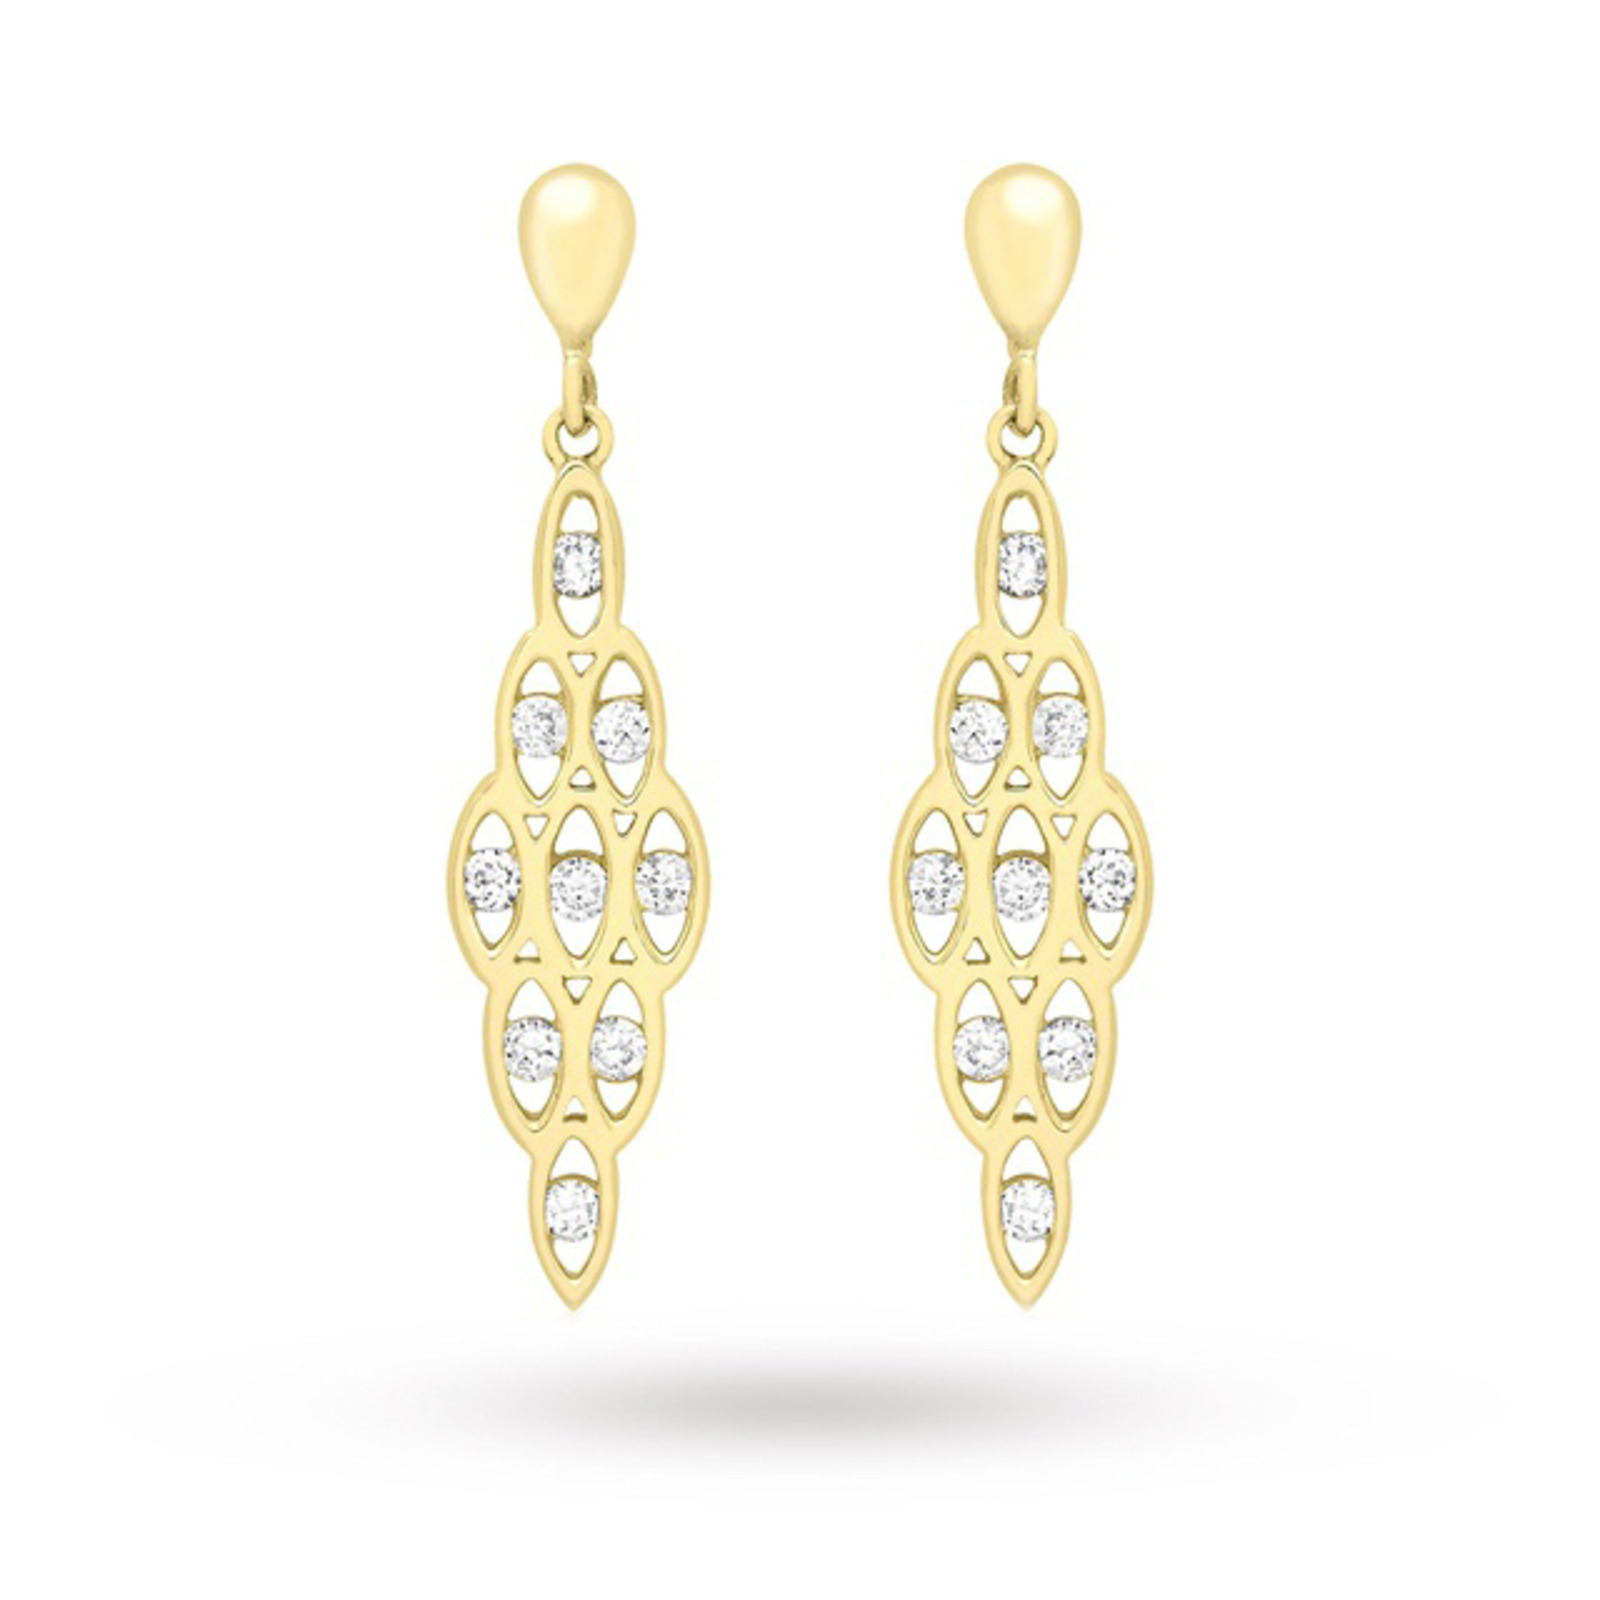 9 Carat Yellow Gold Honeycomb Cubic Zirconia Drop Earrings